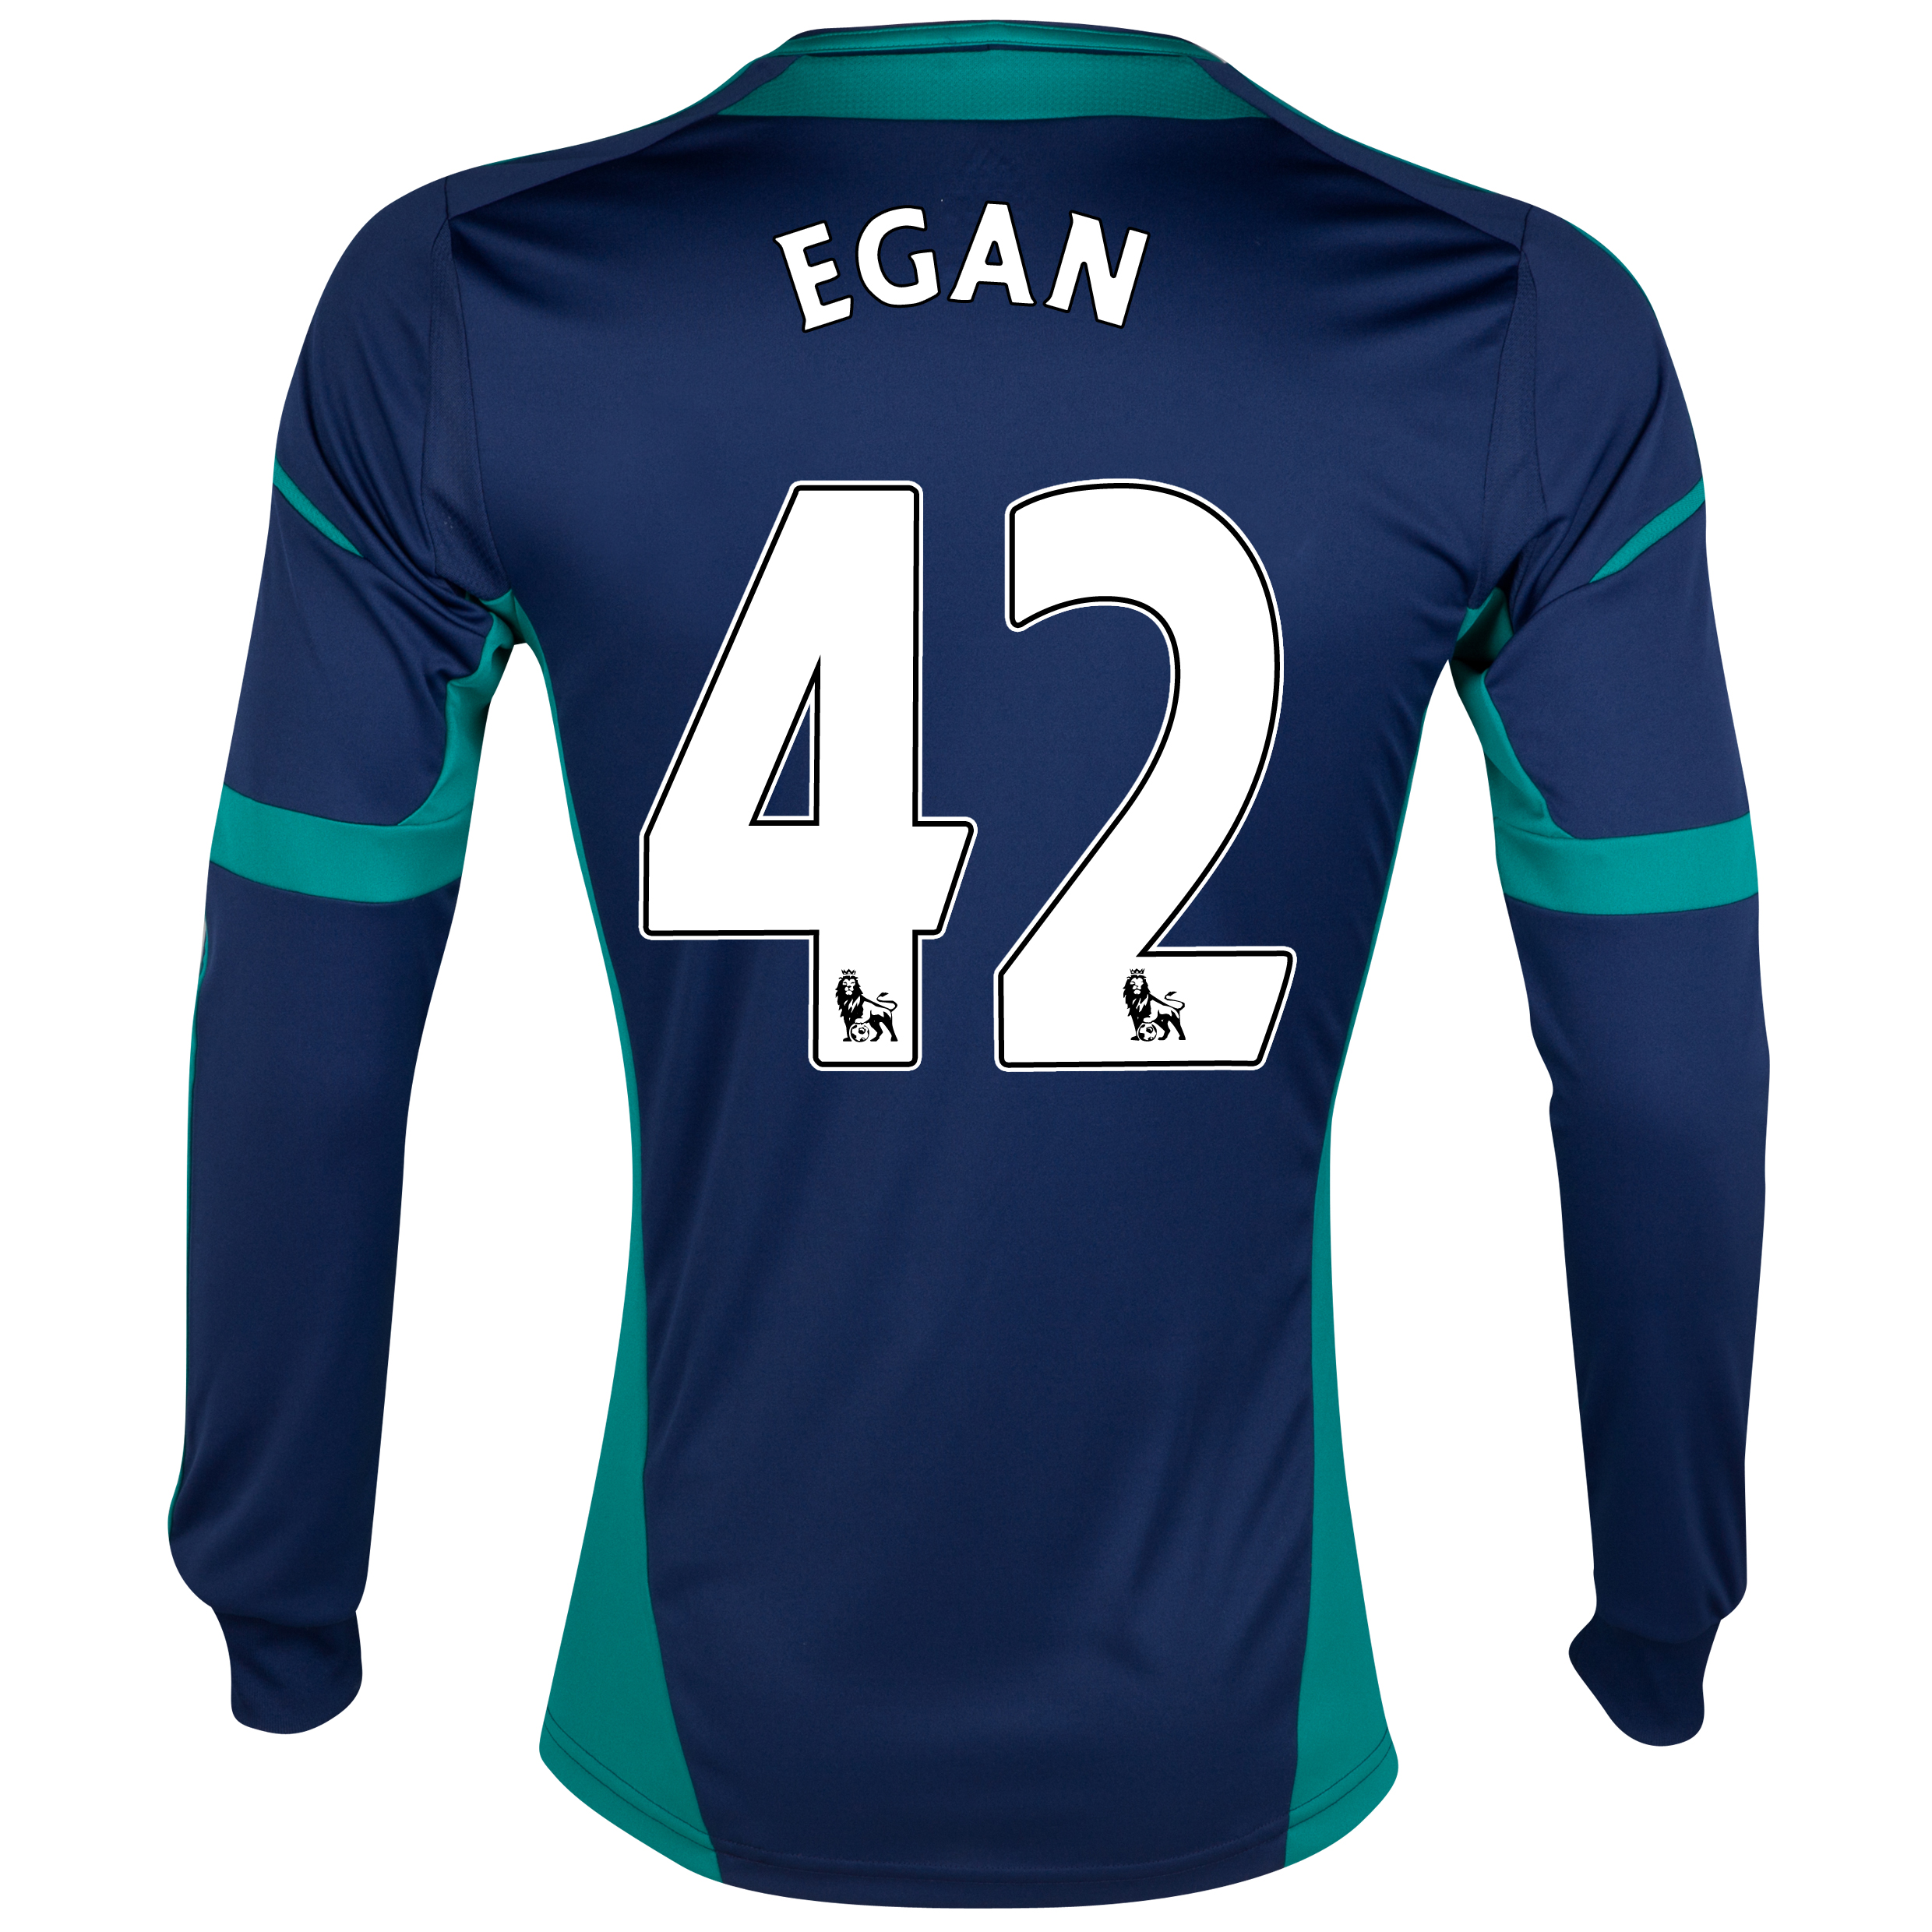 Sunderland Away Shirt 2012/13 - Long Sleeved with Egan 42 printing